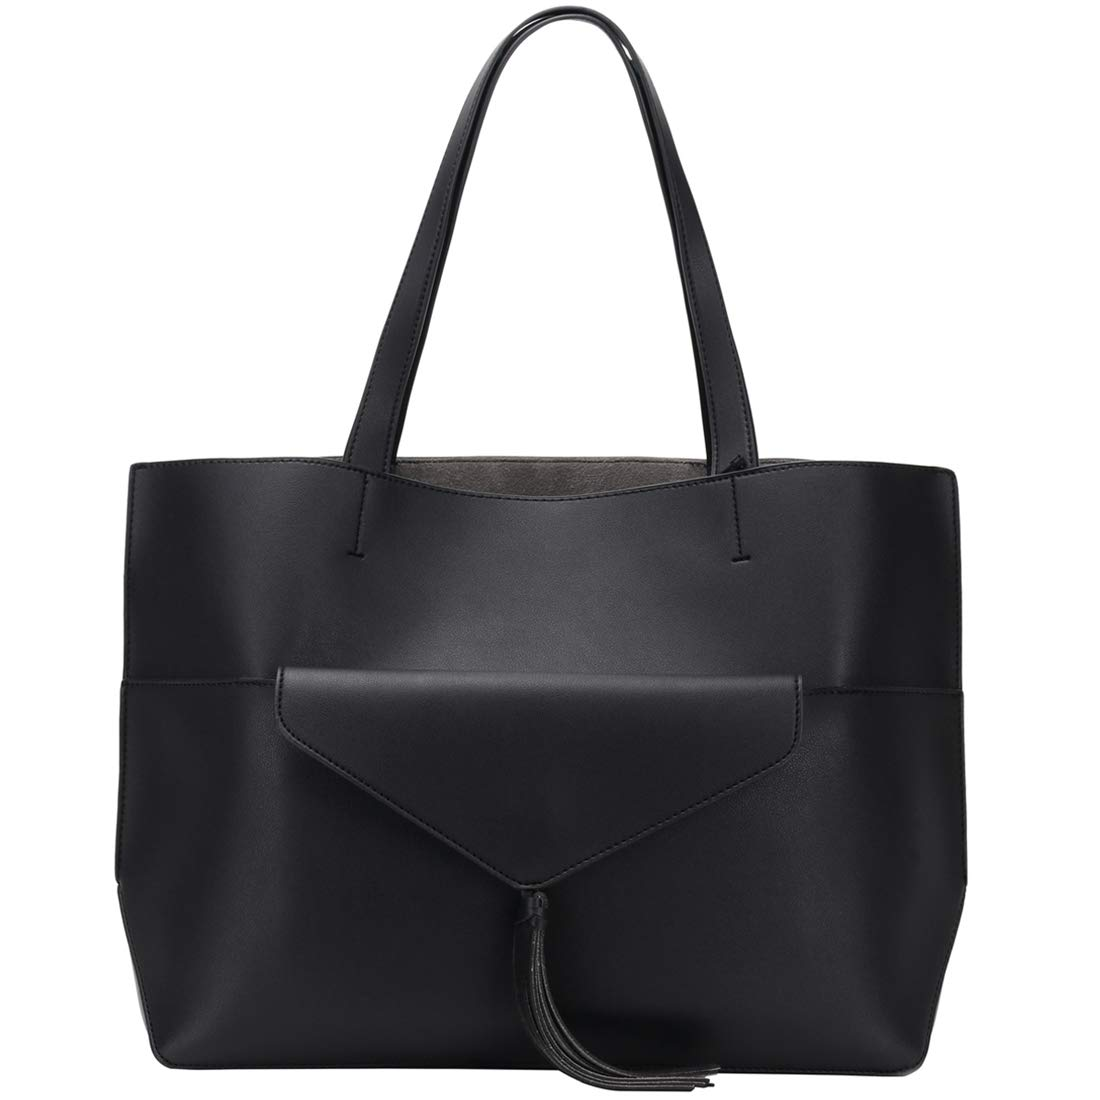 6f9504f769 Amazon.com  Alnaue Women PU Leather Handbags Black Tote Bag Matching Wallet  Satchel Shoulder Bags  Shoes